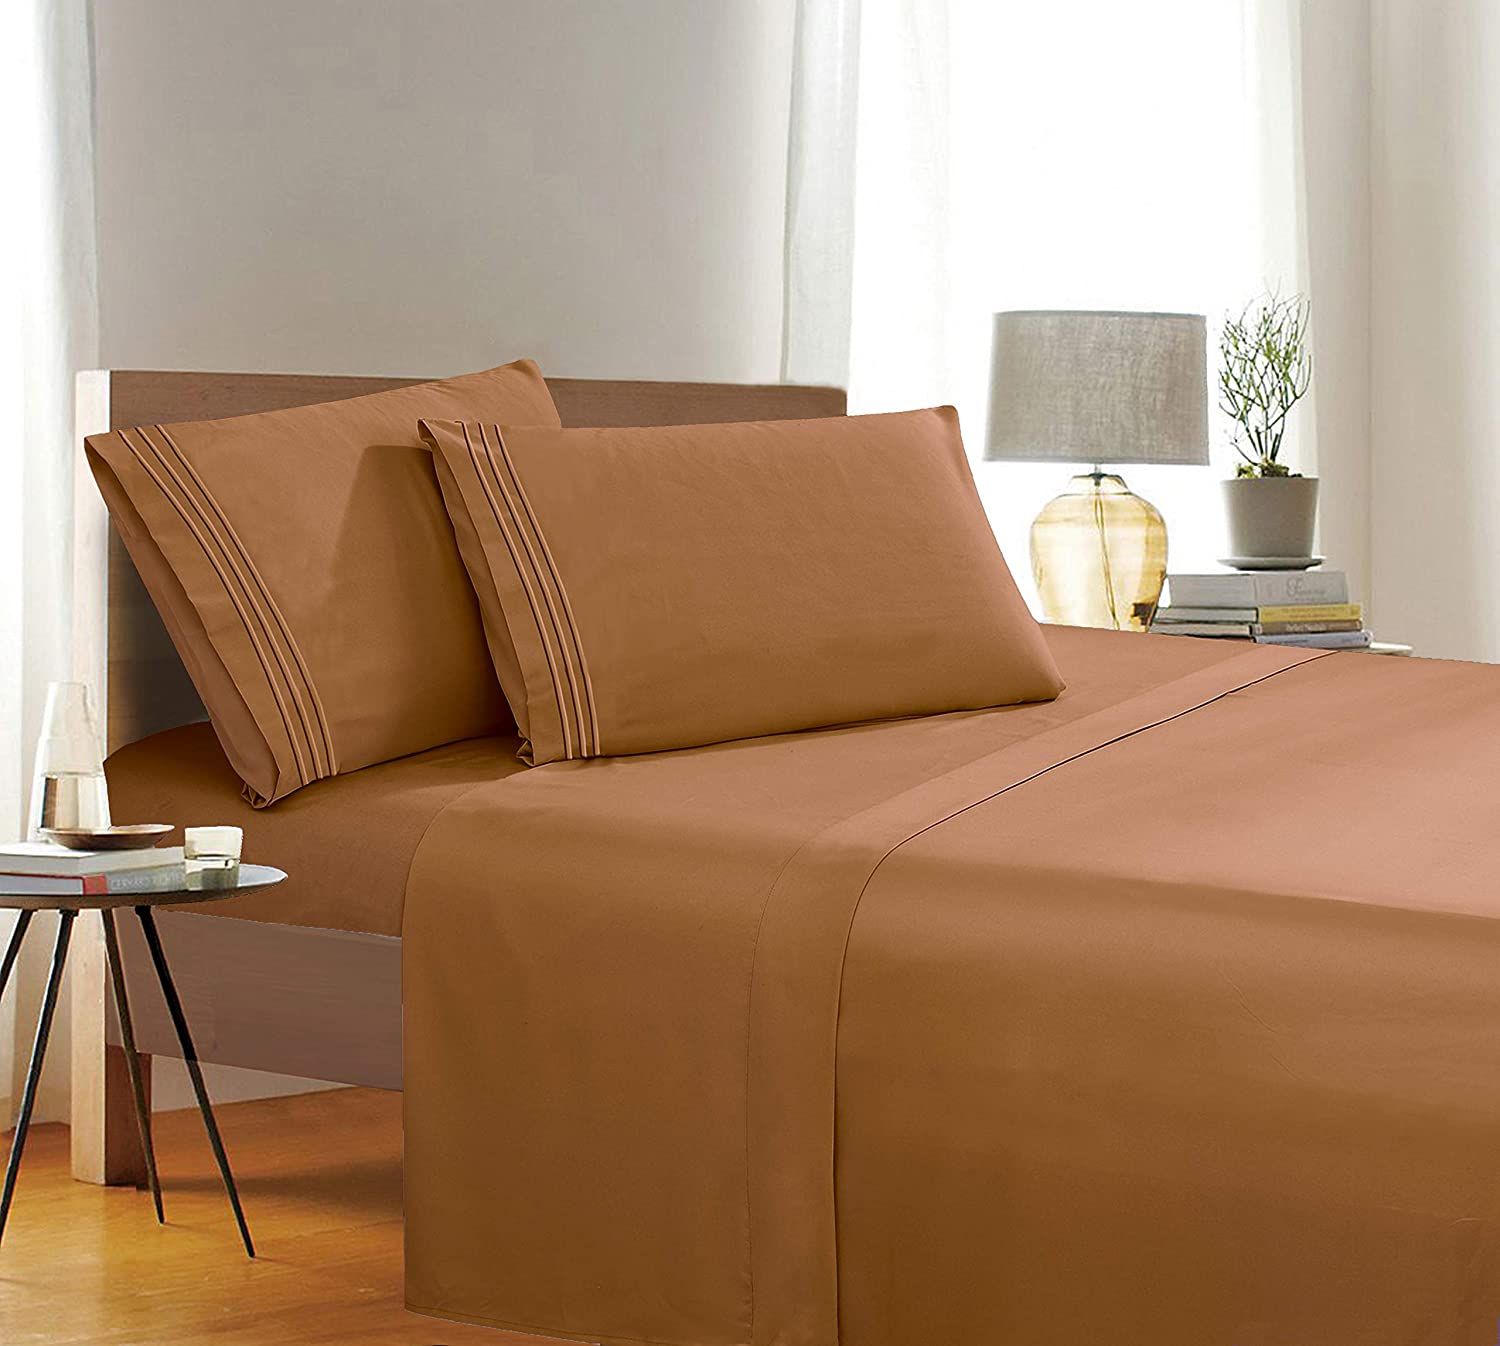 Split King Size 2 Fitted Sheet and 2 Pillowcases 1500 Thread Count Wrinkle /& Fade Resistant Egyptian Quality 5-Piece Bed Sheet Set Ultra Soft Luxurious Set Includes 1 Flat Sheet Boysenberry